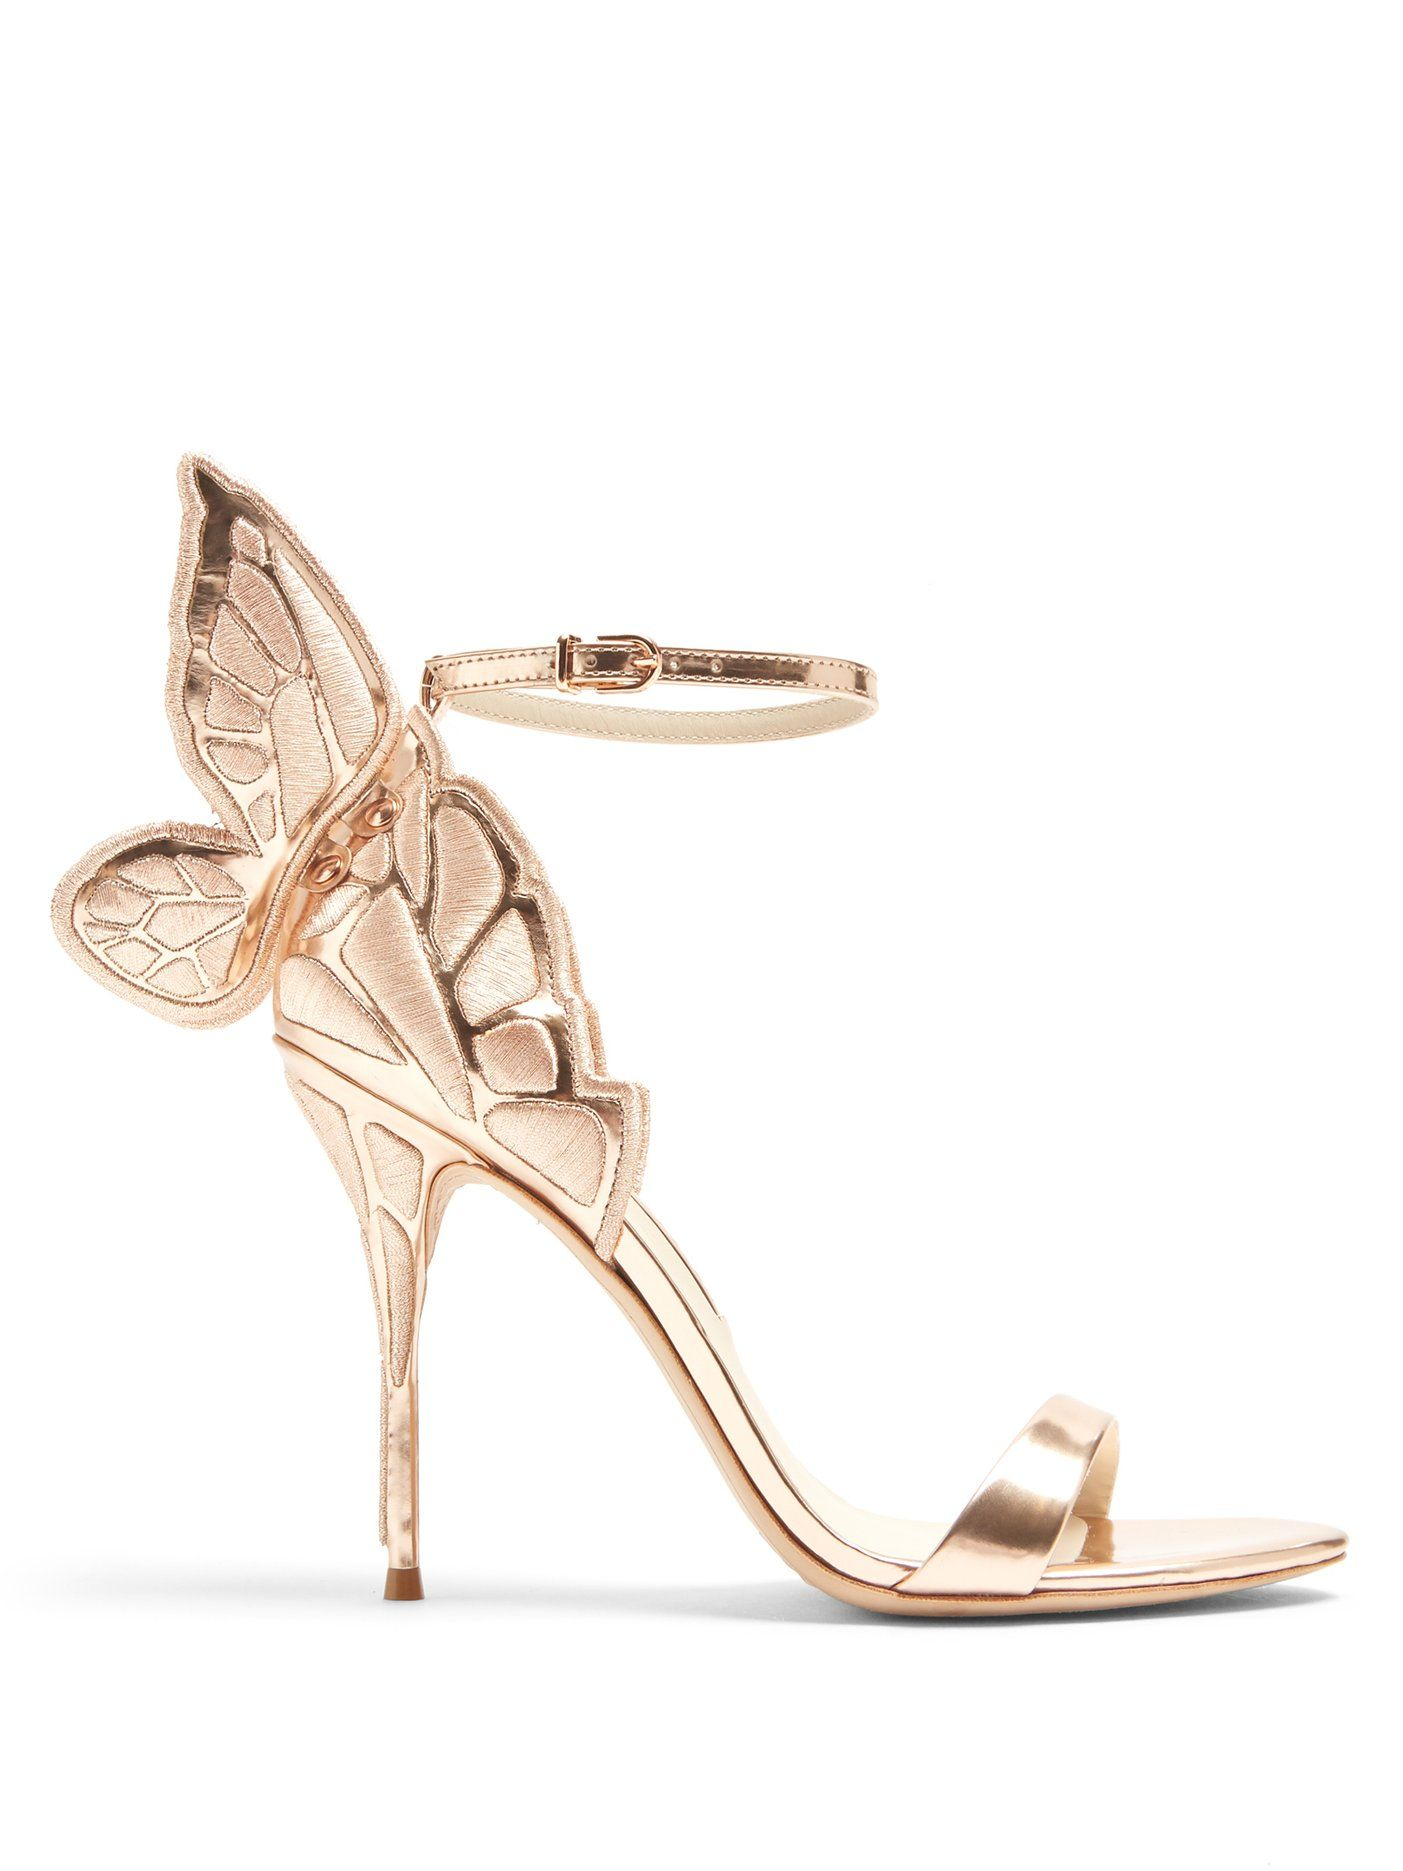 225d6d9eb46b Click here to buy Sophia Webster Chiara butterfly-wing leather sandals at  MATCHESFASHION.COM